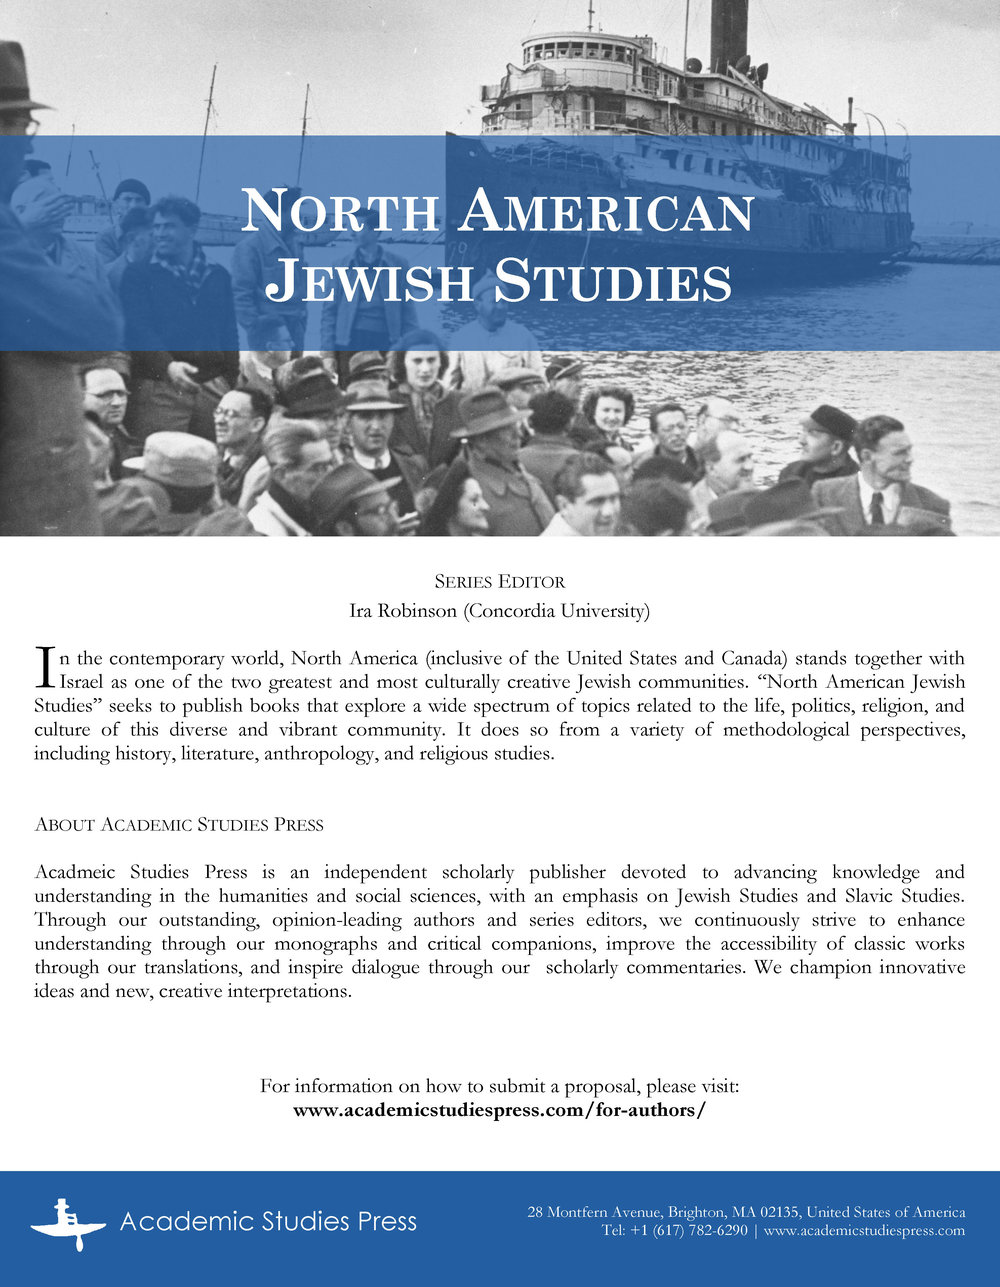 North American Jewish Studies Flyer.jpg